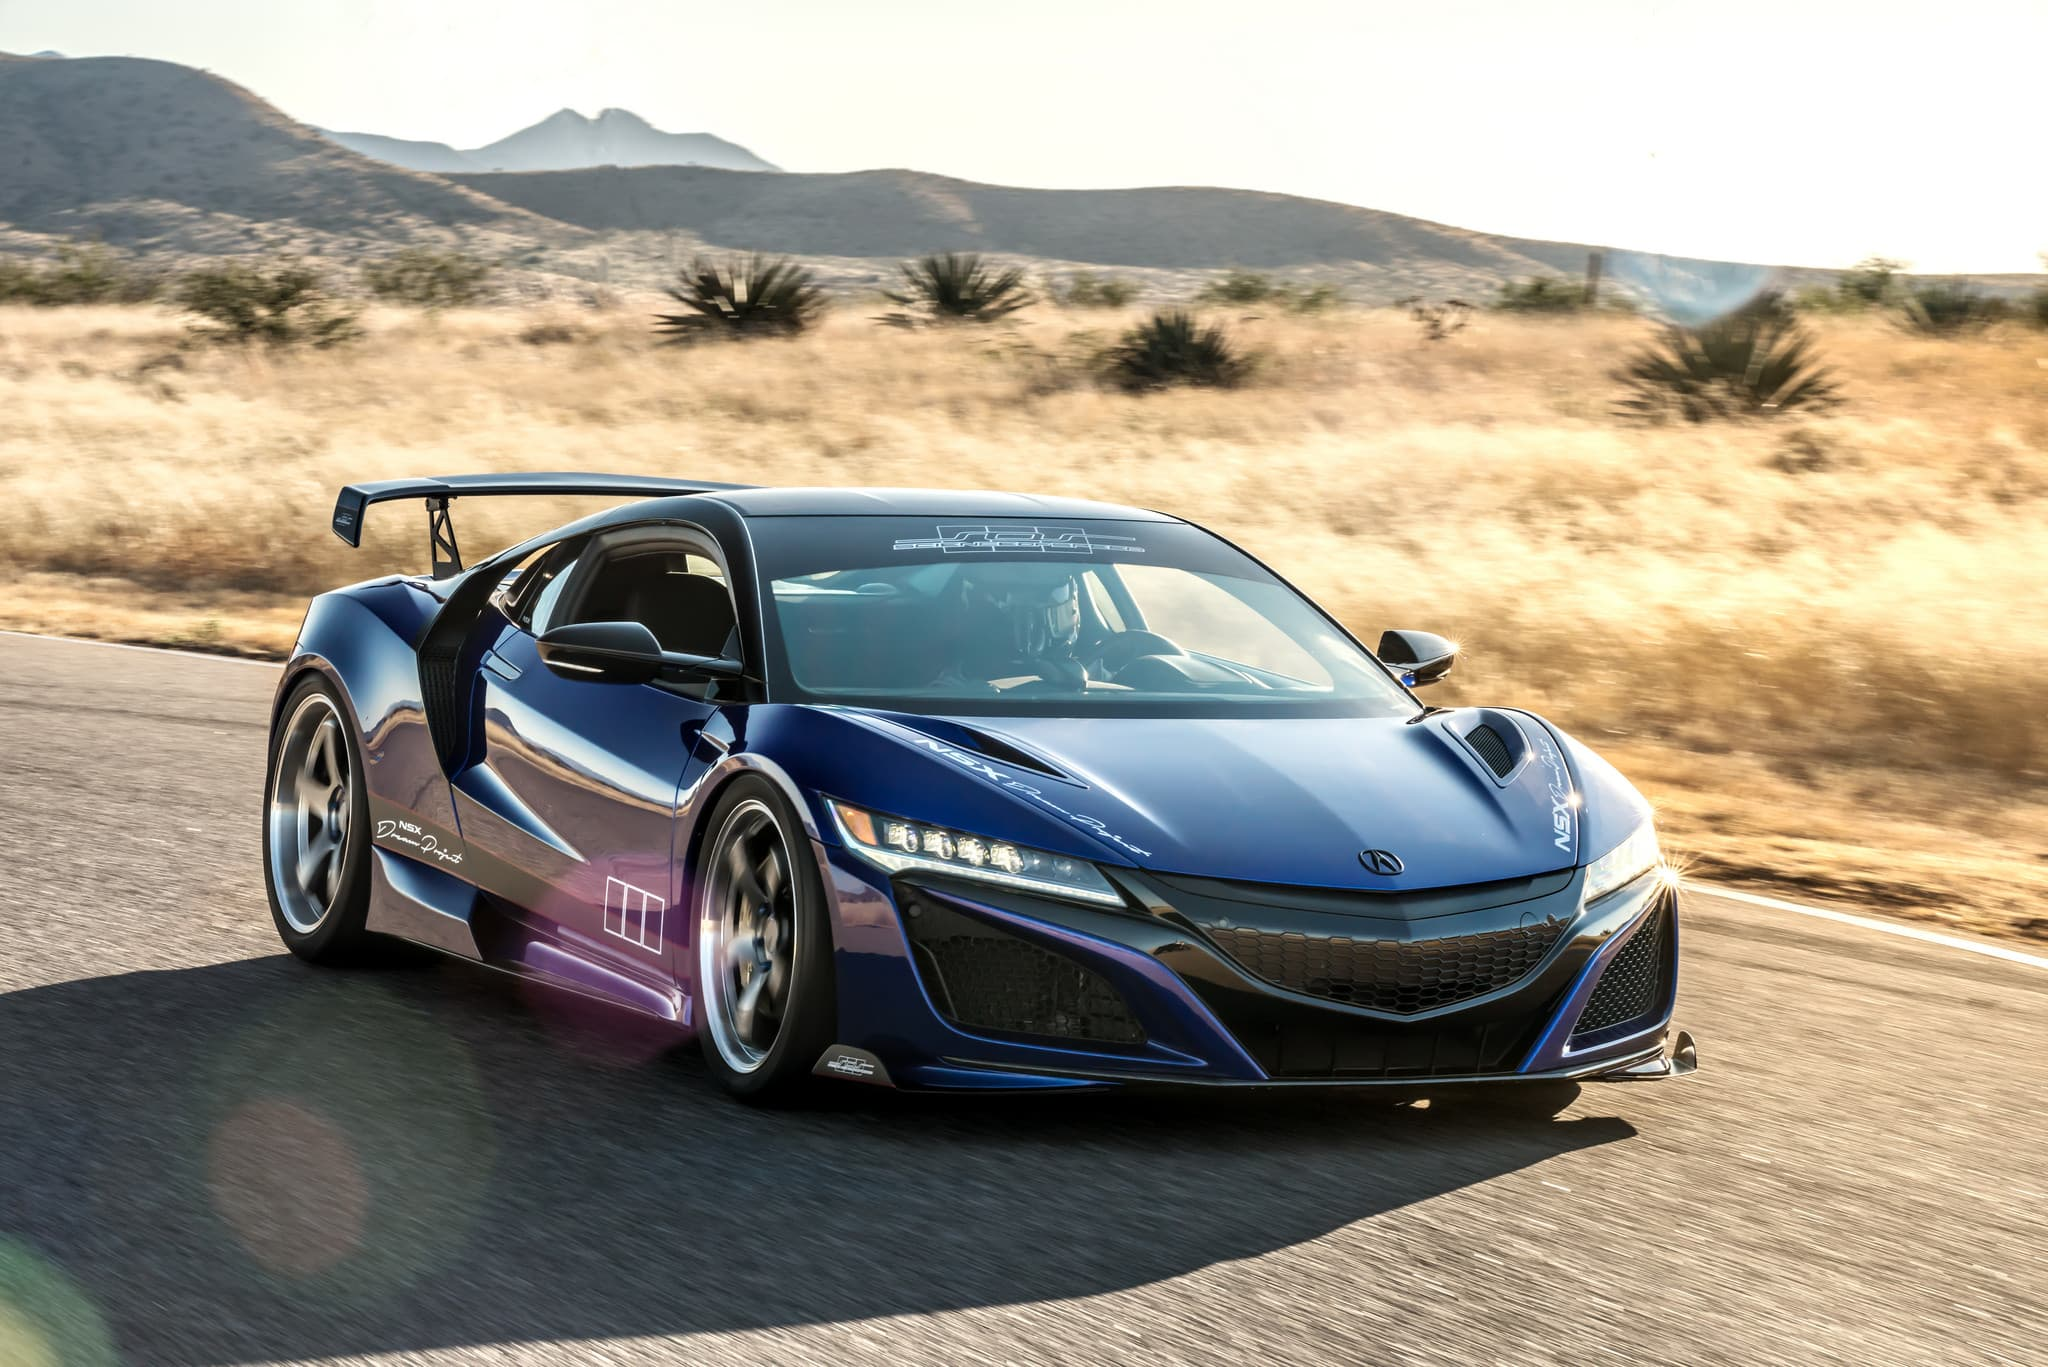 2017 Acura NSX background